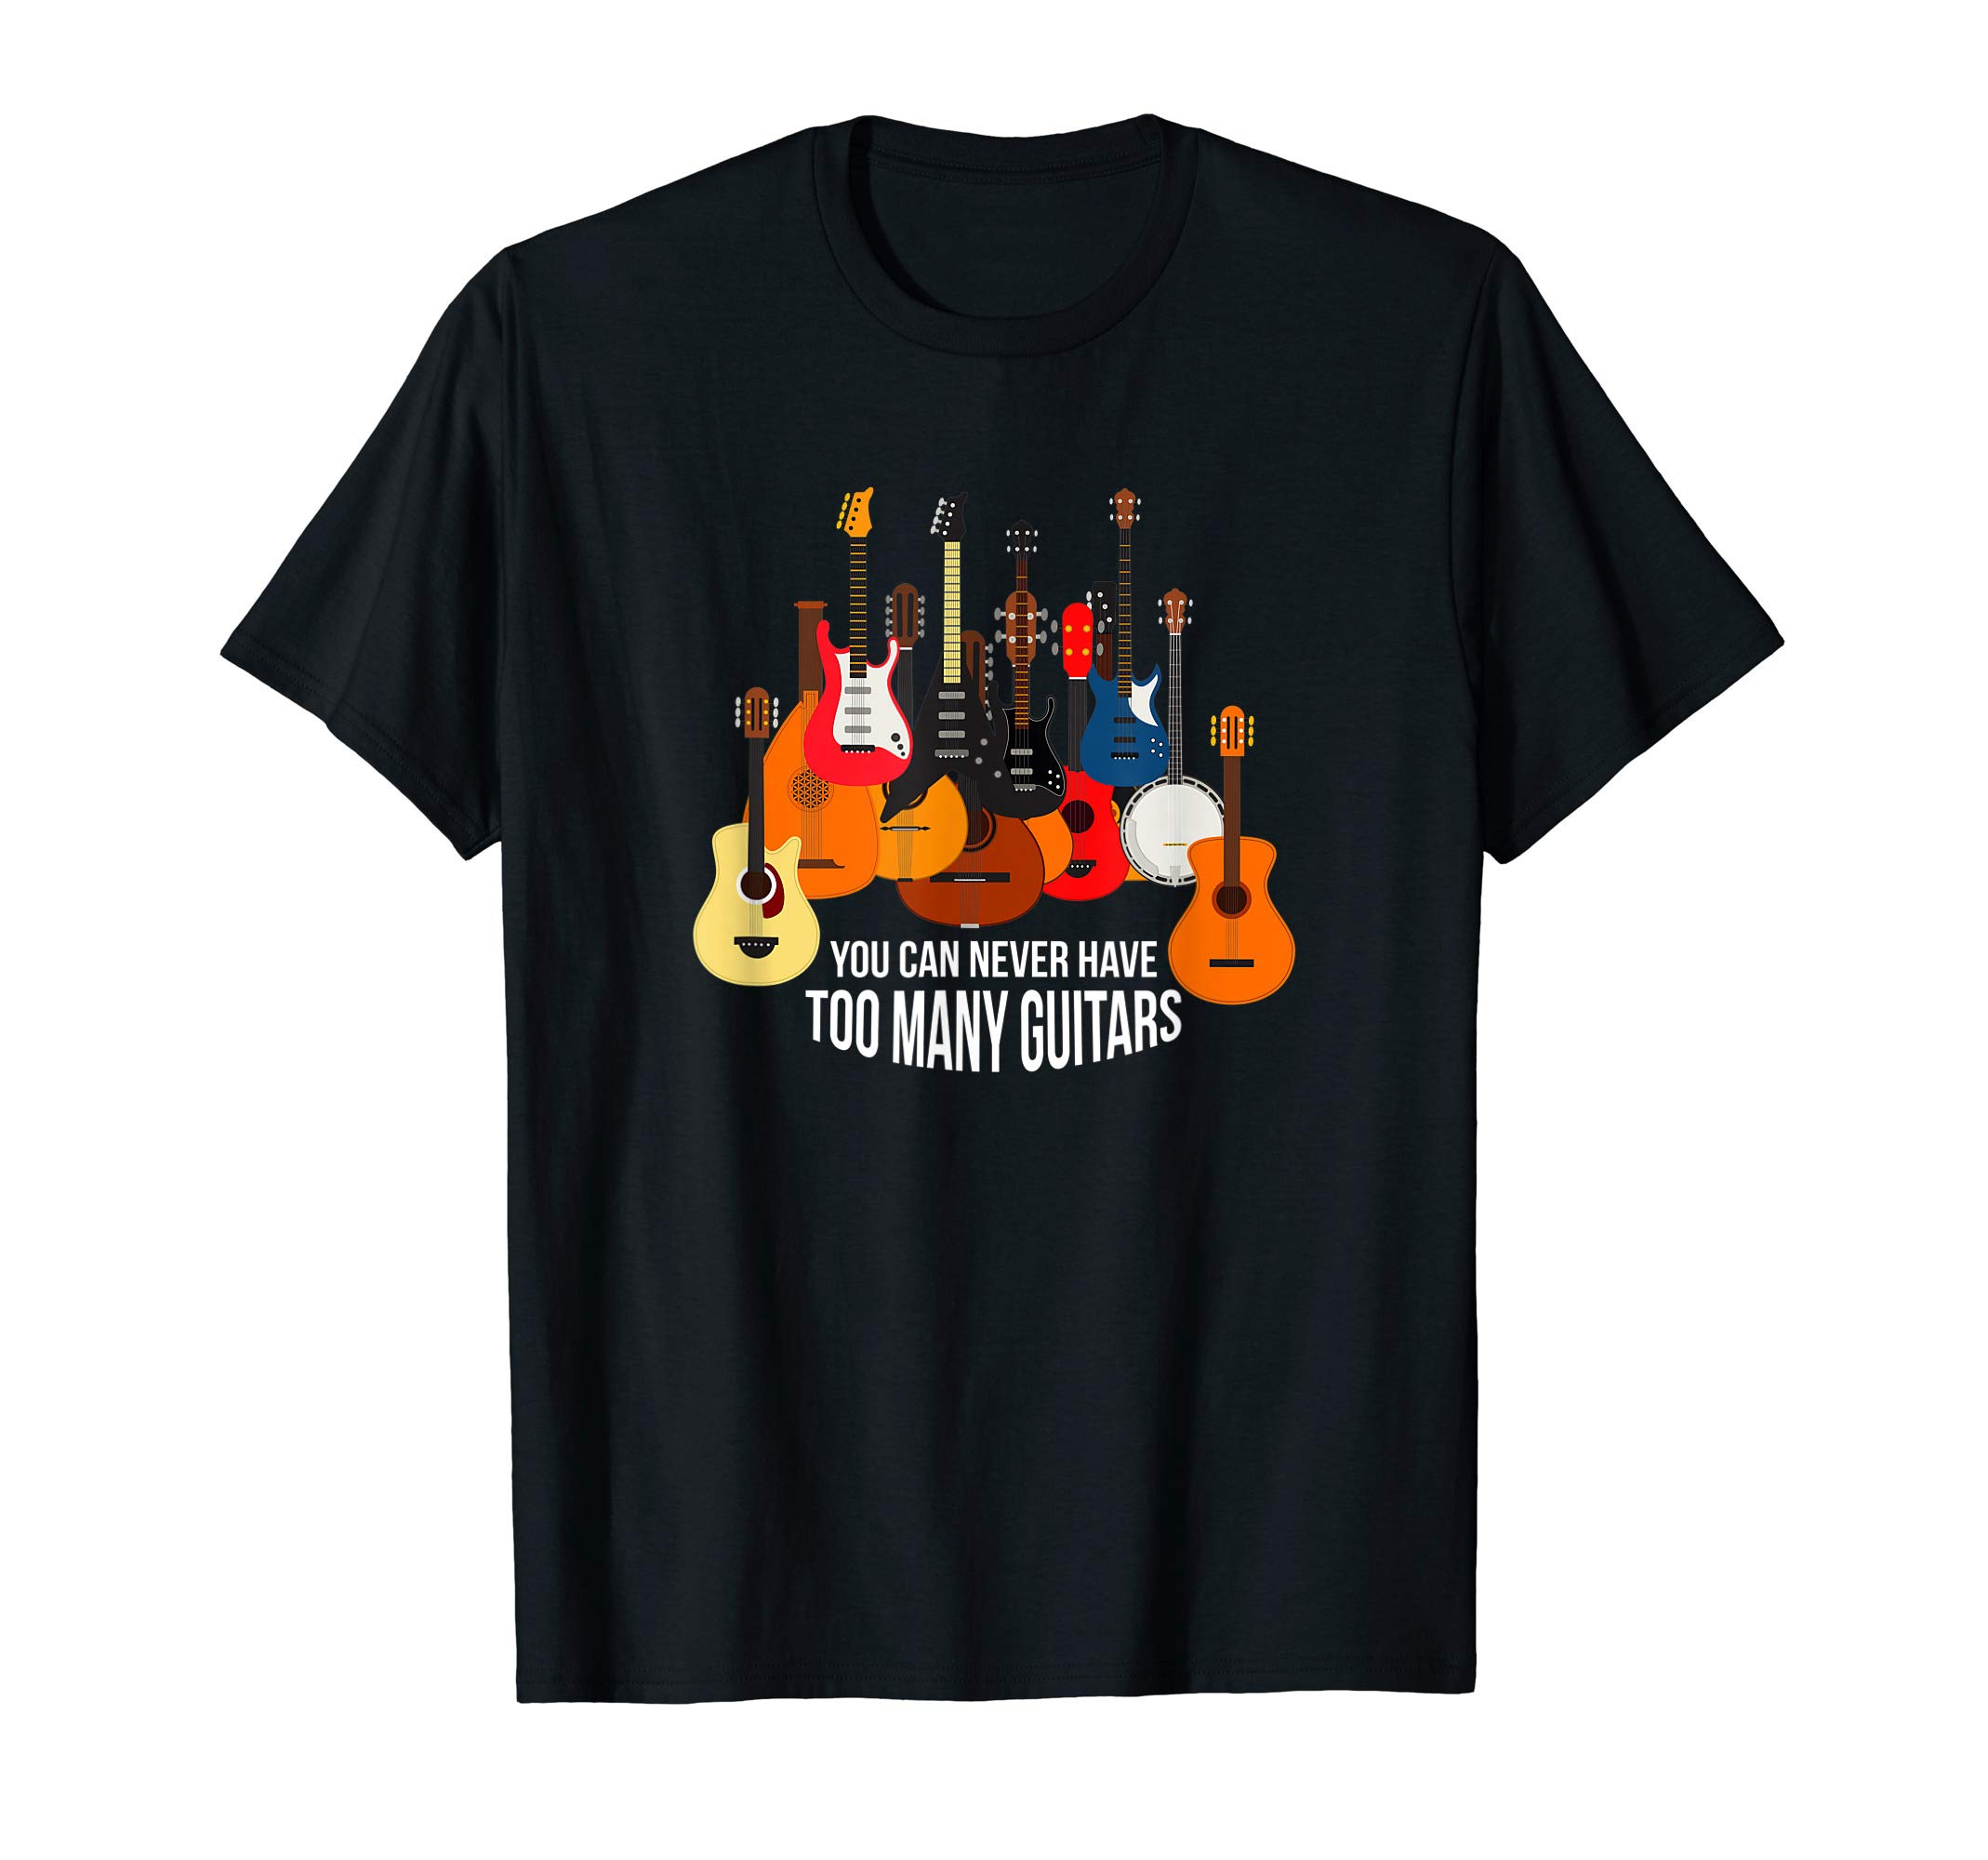 Can't Have Too Many Guitars T Shirt for Guitar Lovers by Retro Classic Guitar Player Shirts